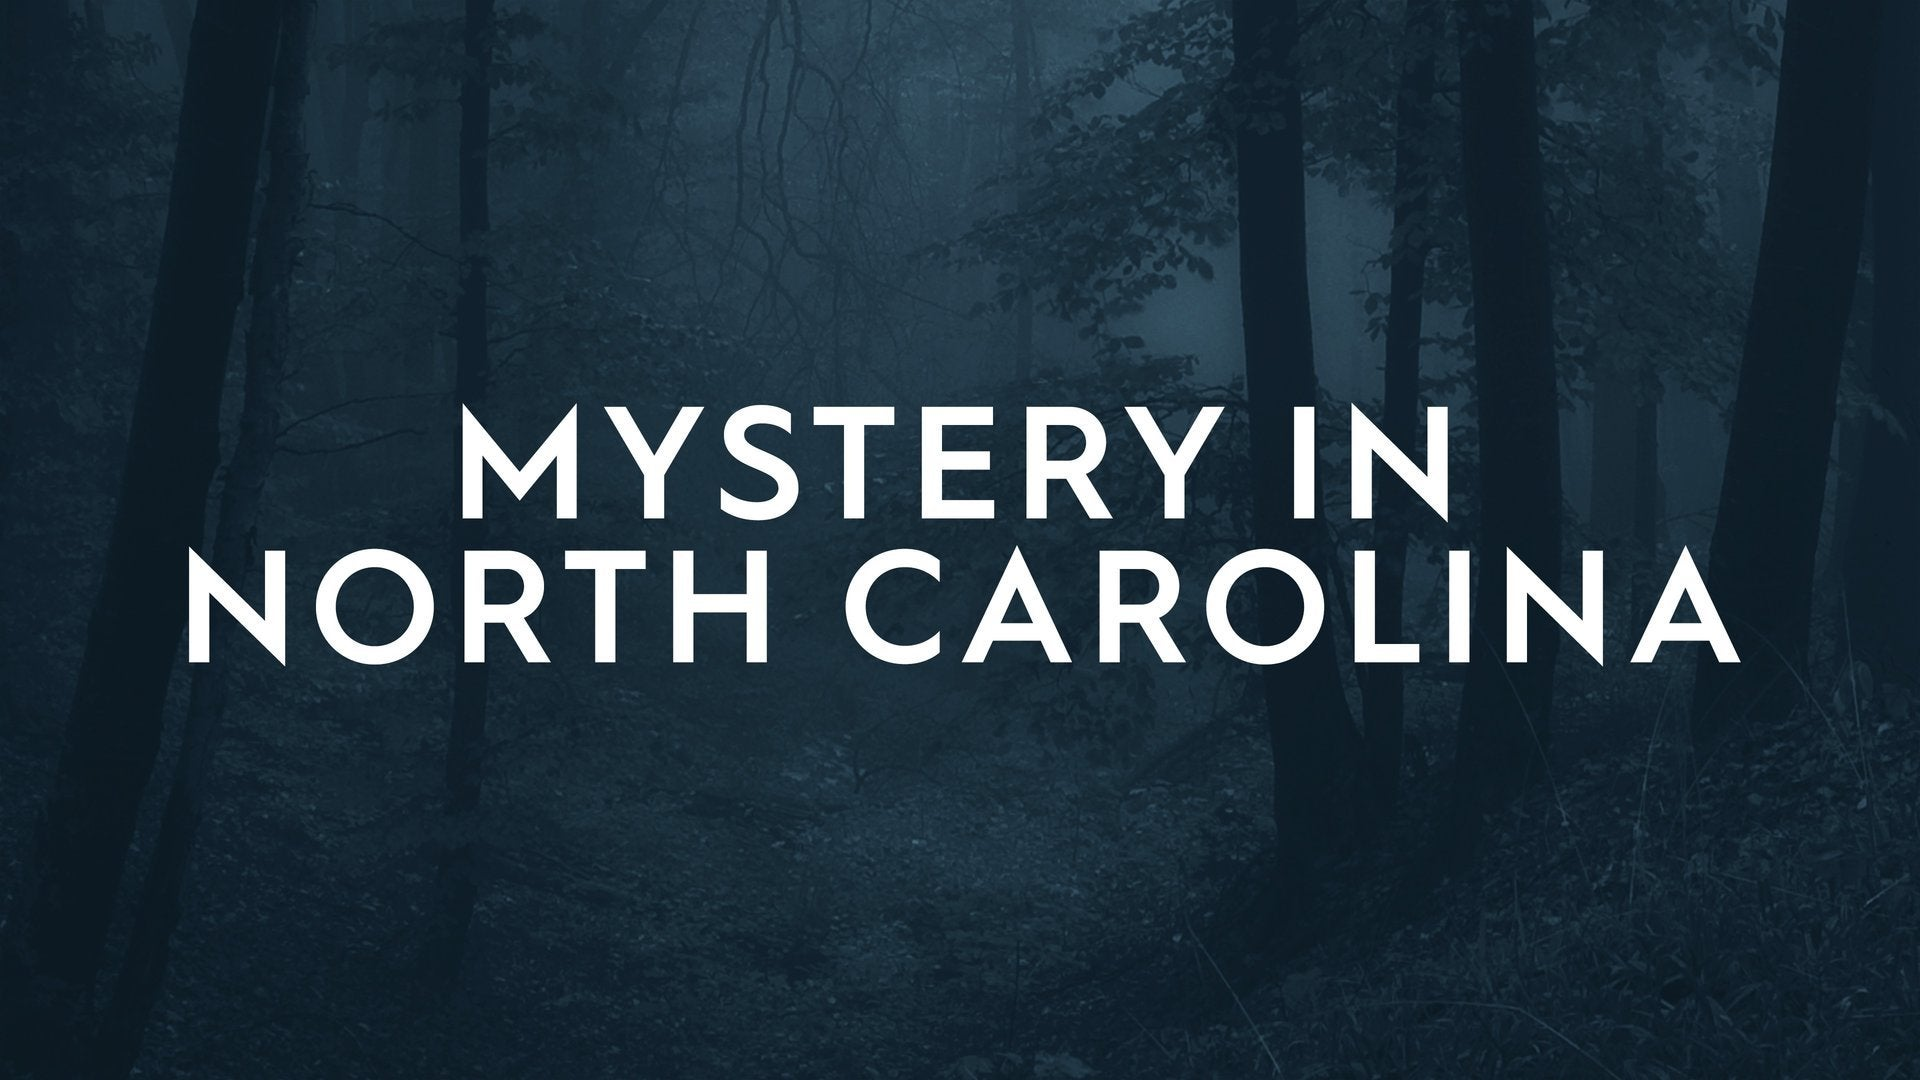 Mystery in North Carolina